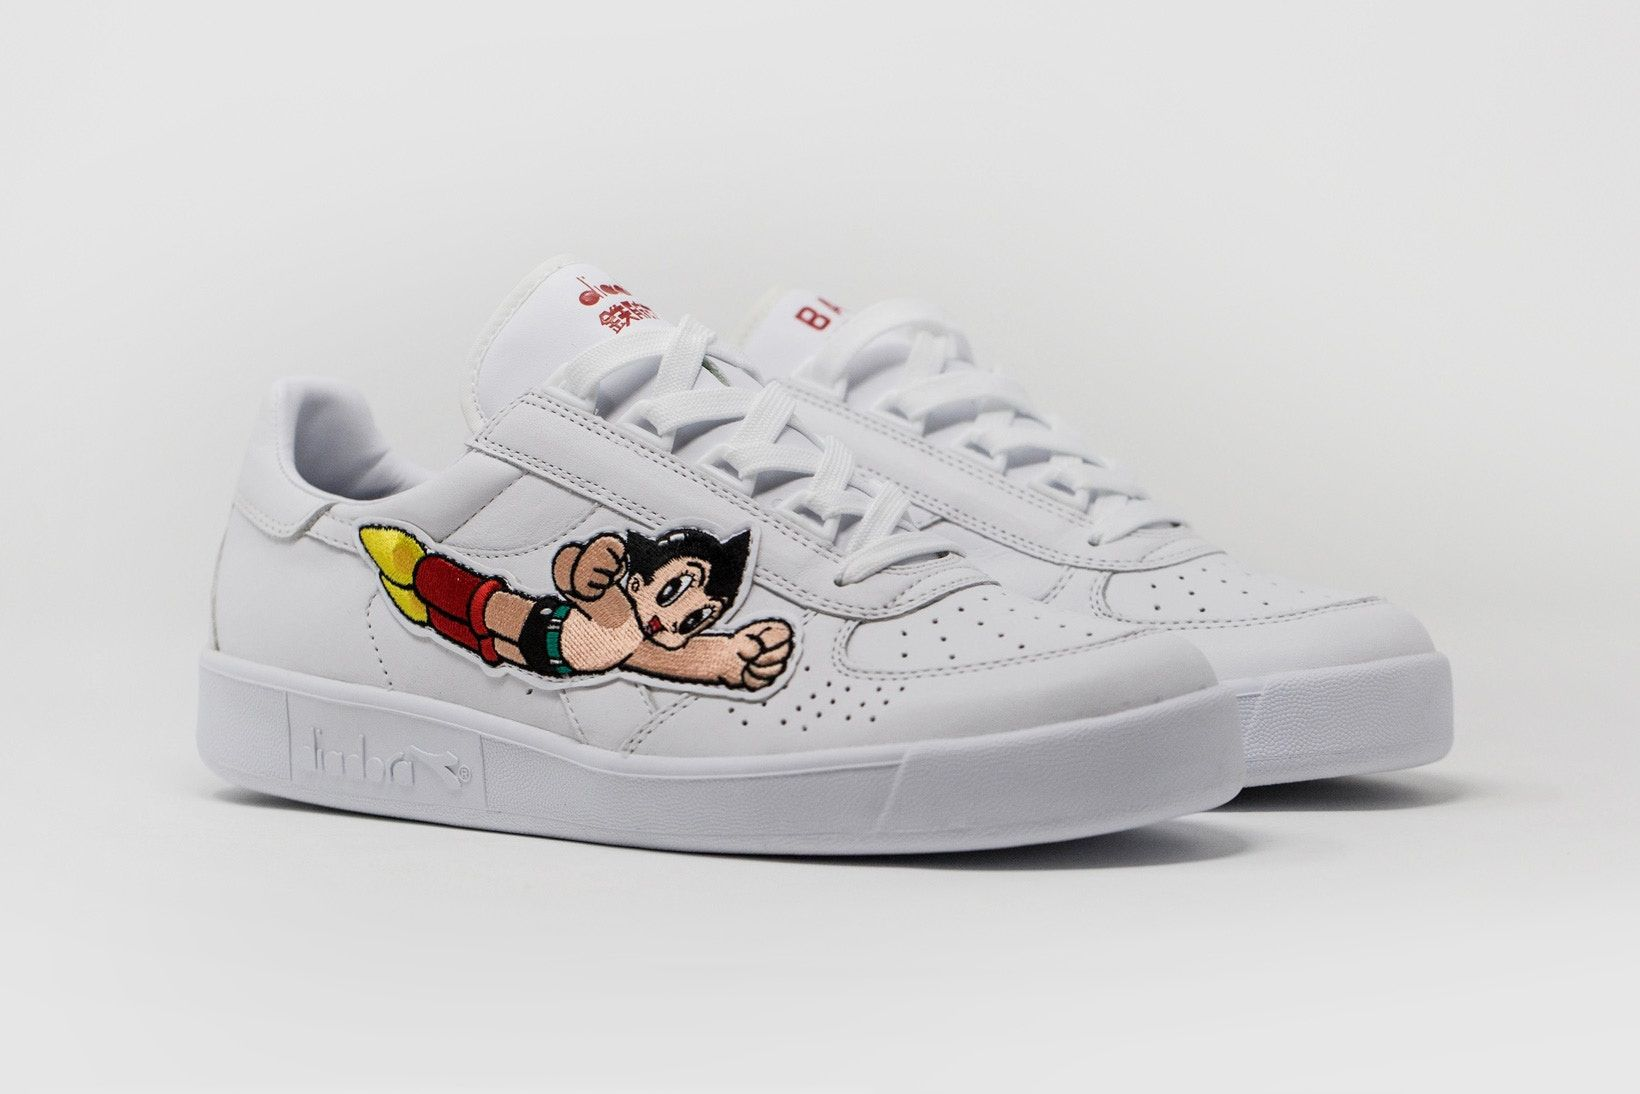 premium selection 999f0 2f468 Astro Boy Teams up With BAIT and Diadora for a B.Elite ...